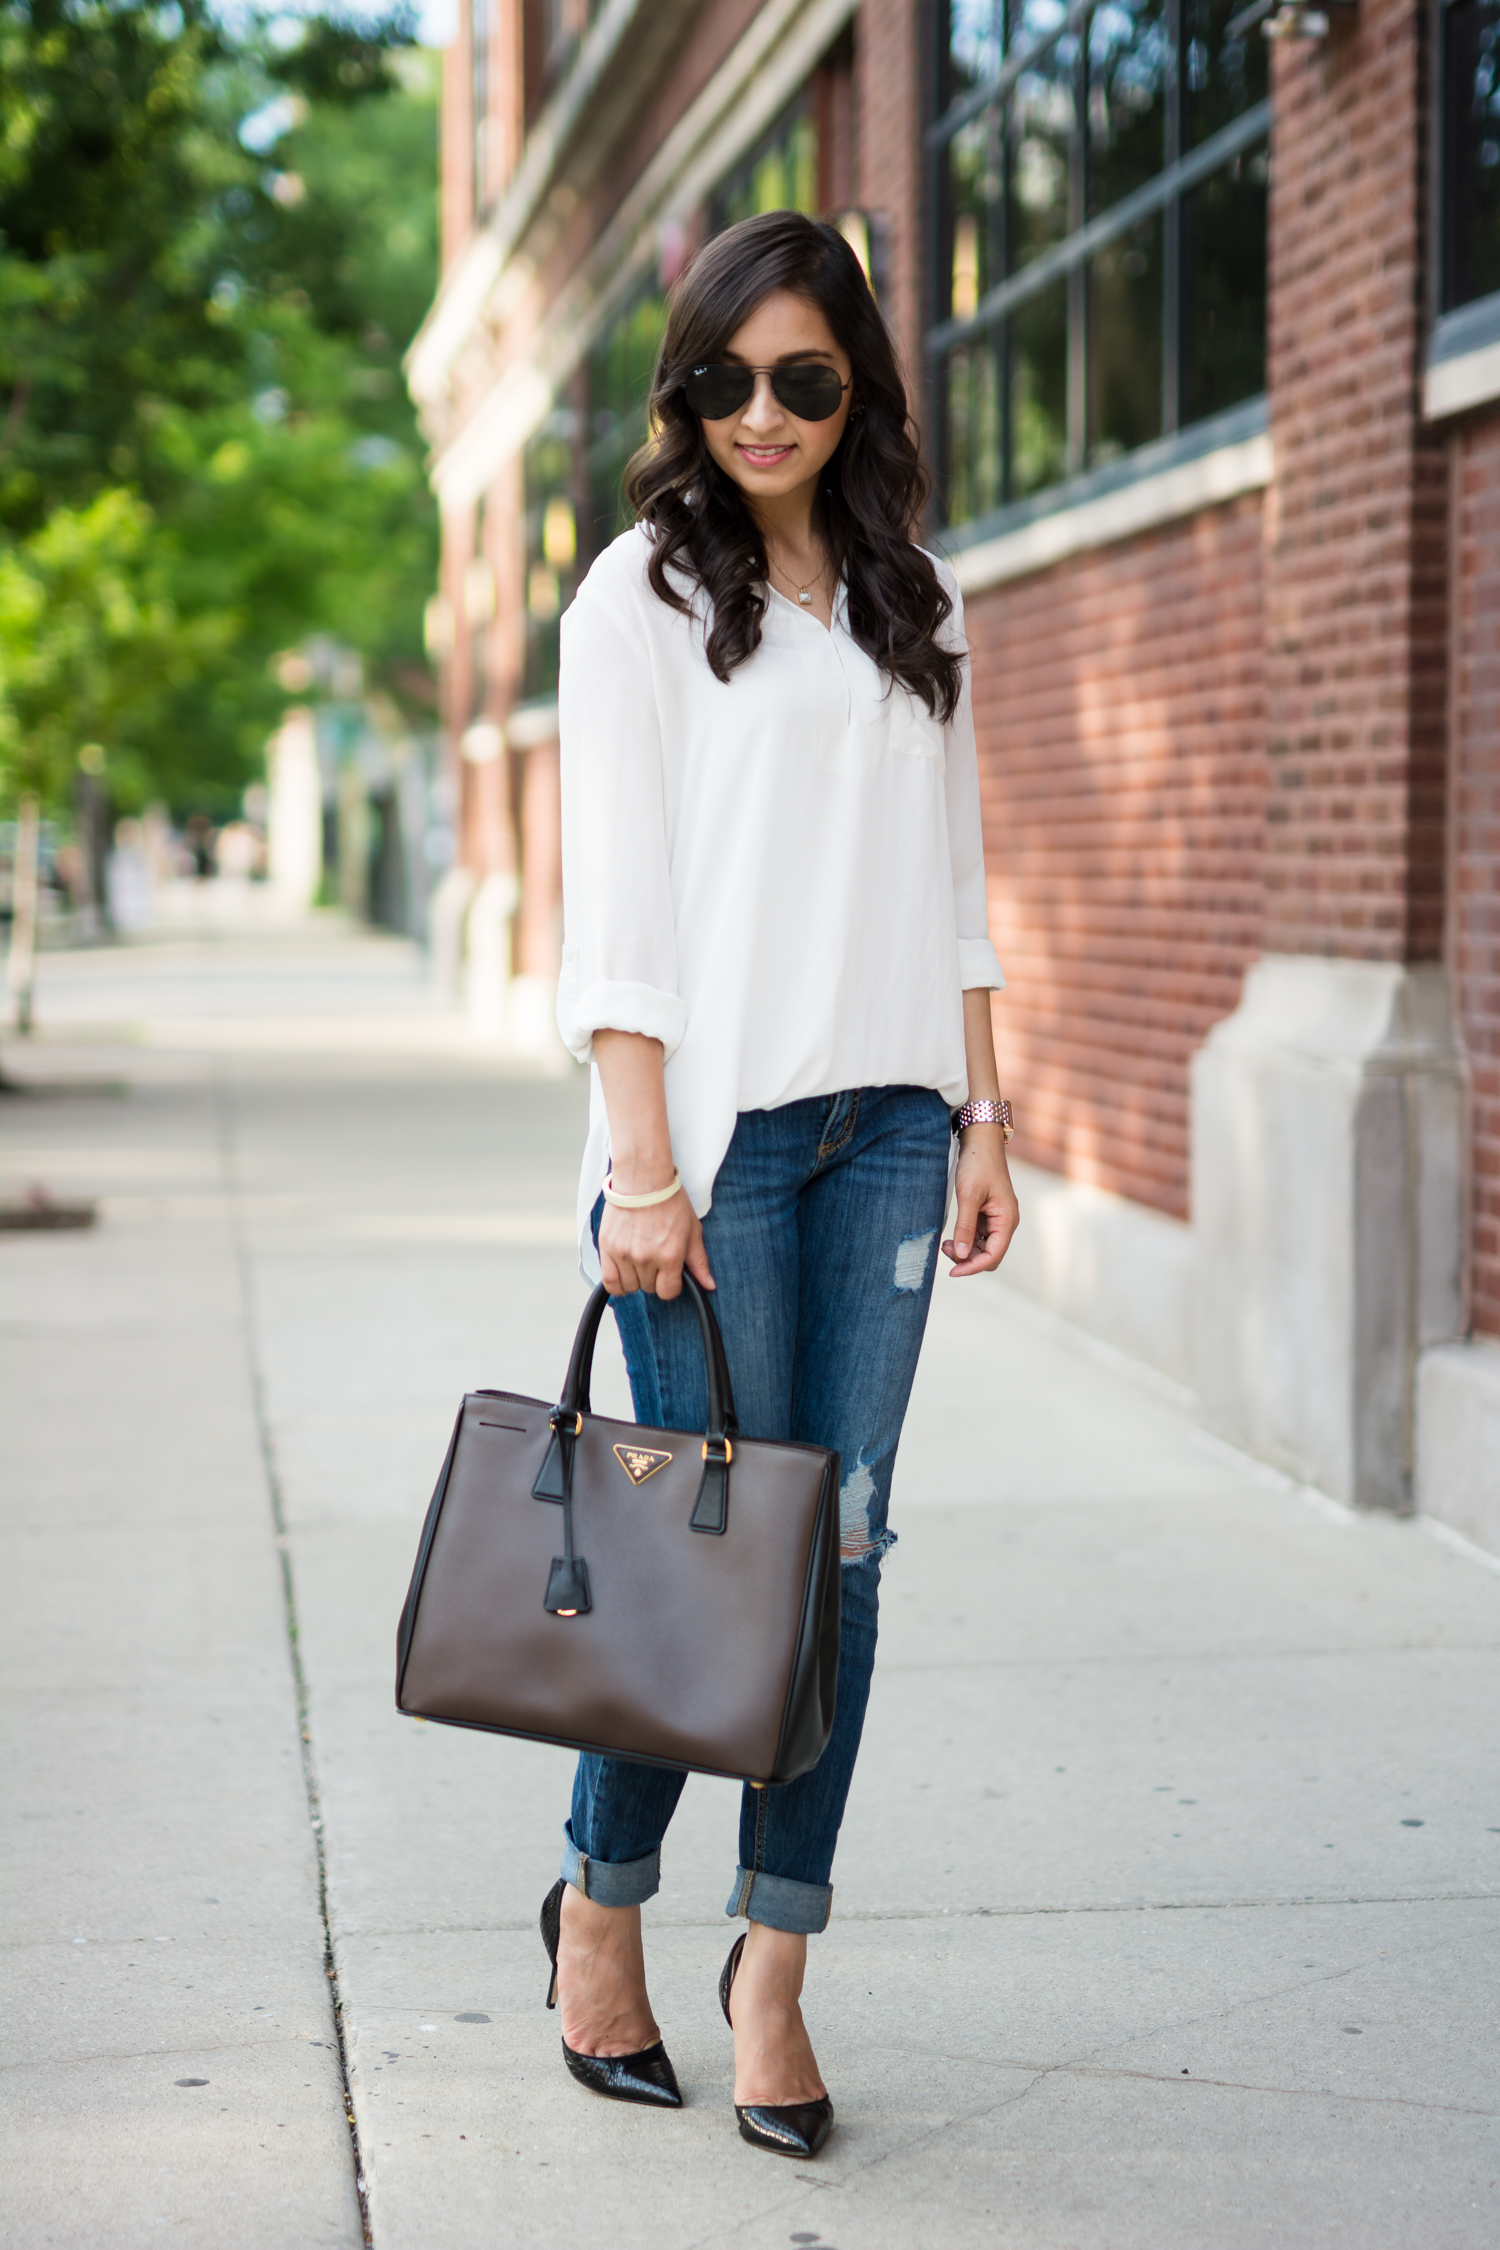 summer style, date night, casual style, prada, sam edelman, distressed denim, white blouse, ray ban aviators, casual chic, summer time date, michele watch